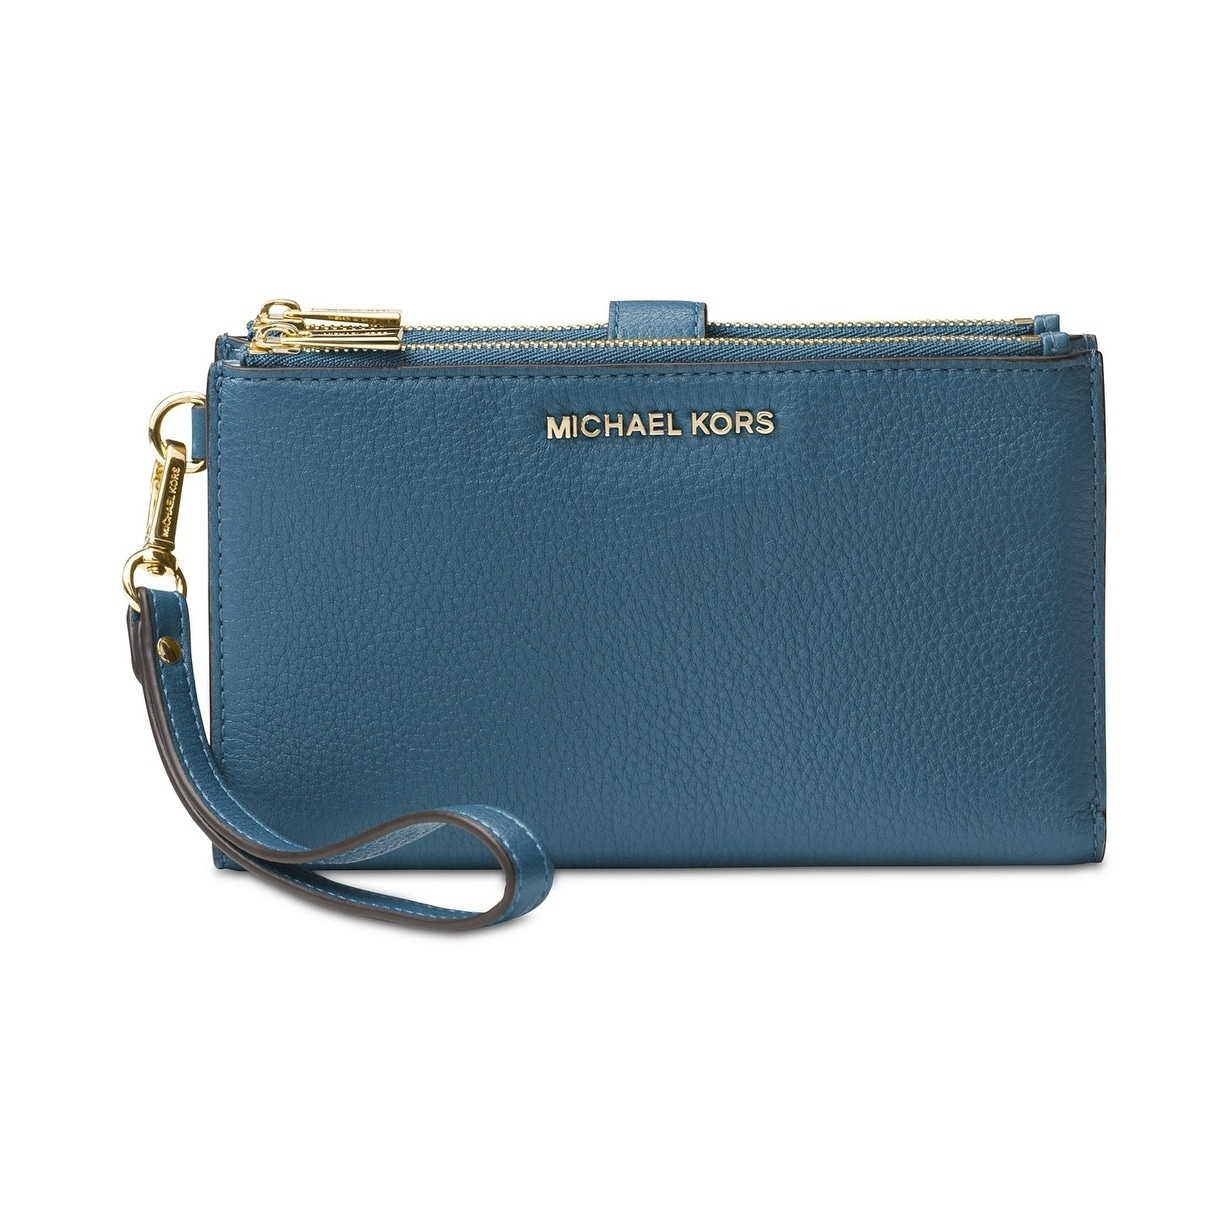 650bbf46d3bf Michael Kors Wallets | Find Great Accessories Deals Shopping at Overstock